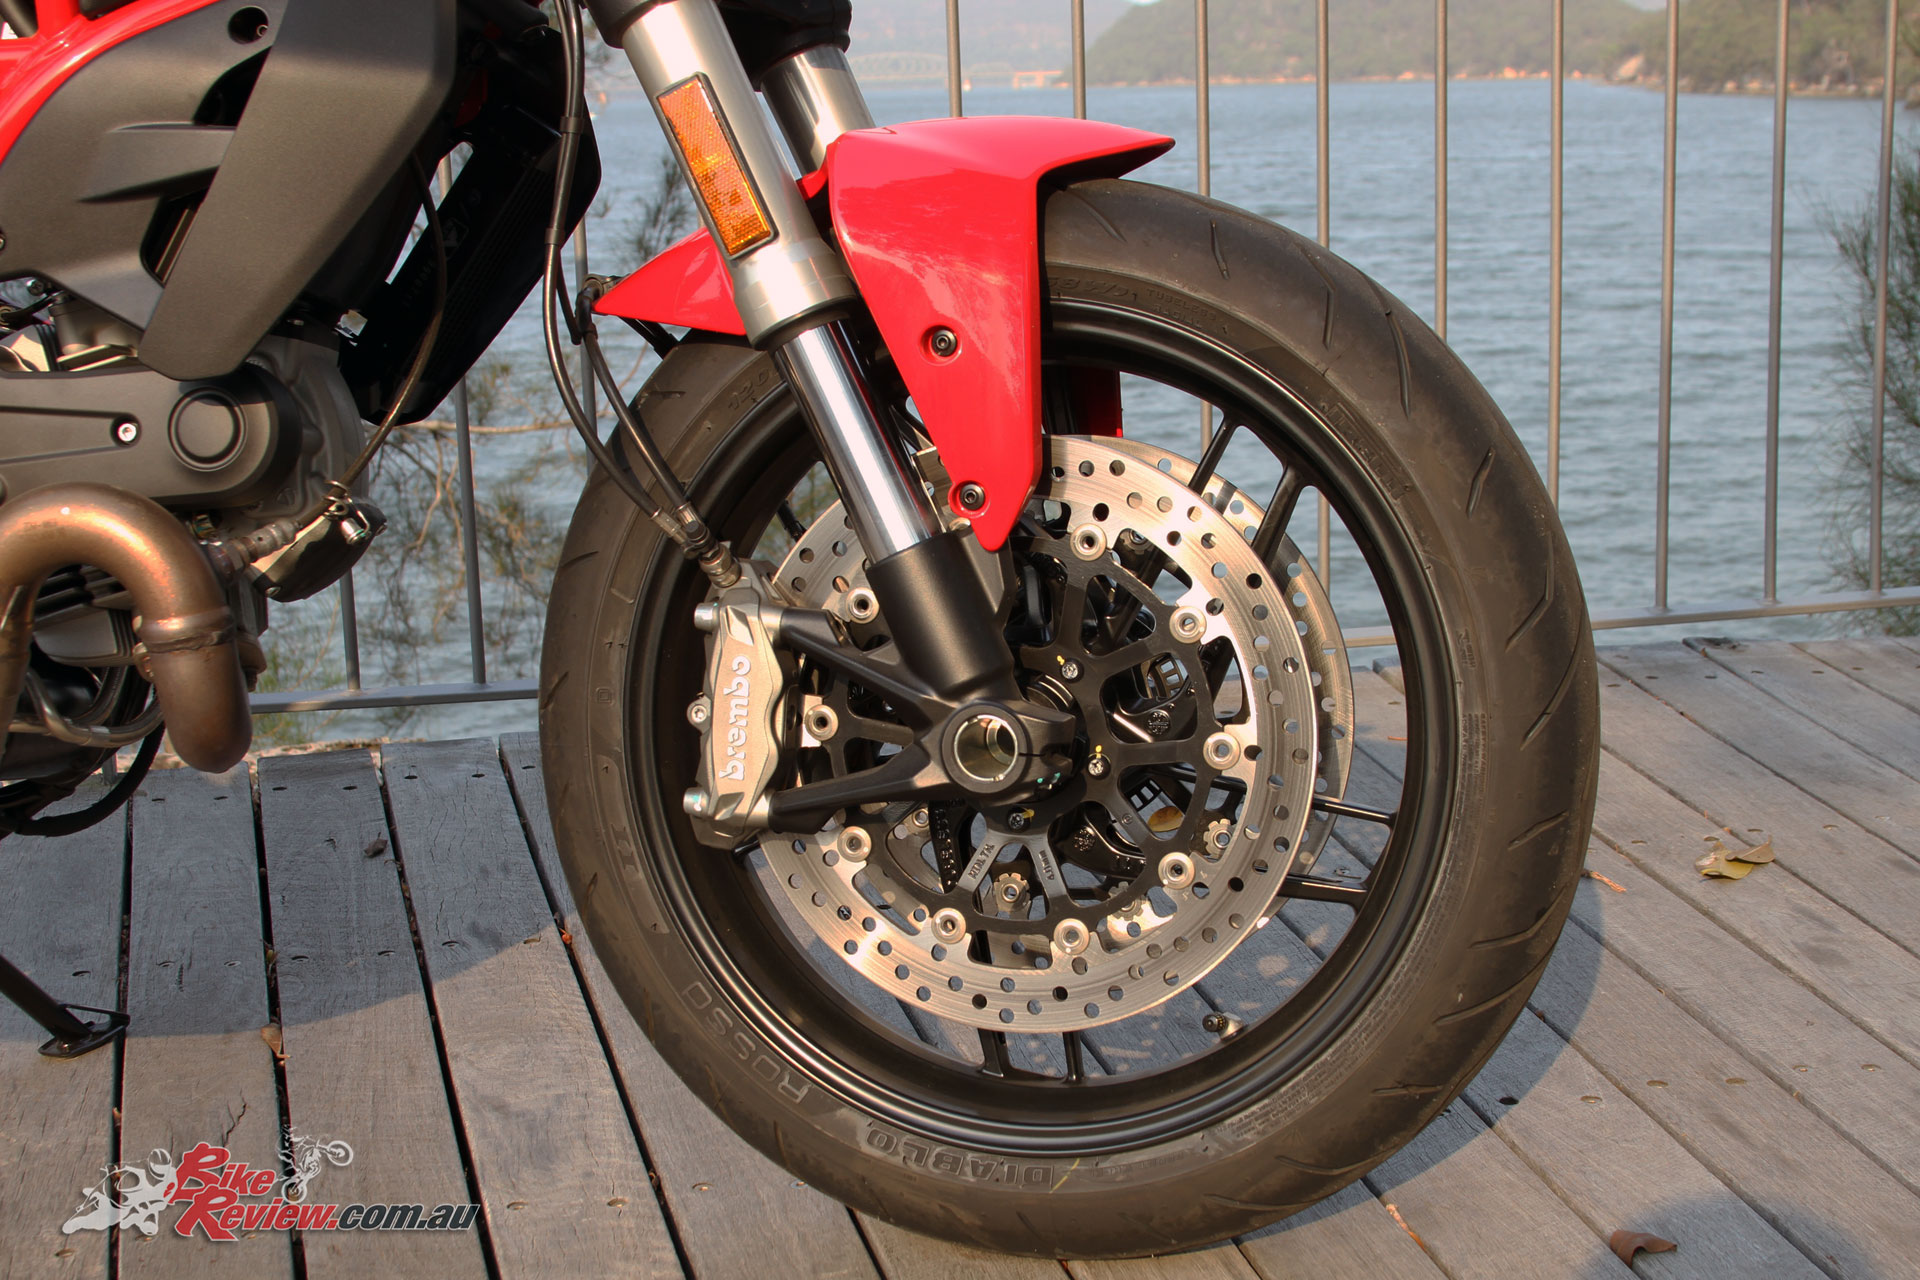 Dual Brembo calipers offer exceptional braking performance